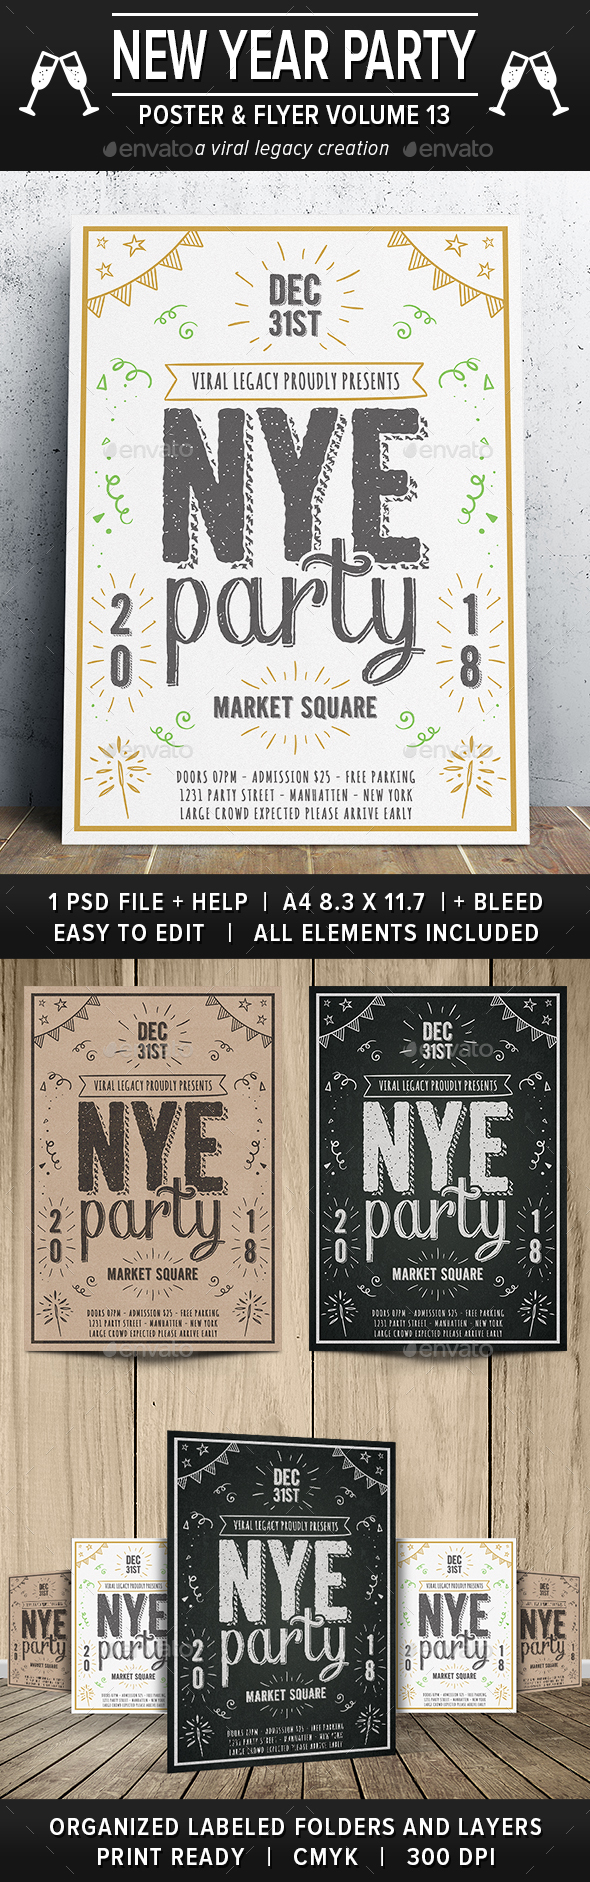 New Year Party Poster / Flyer V13 - Events Flyers